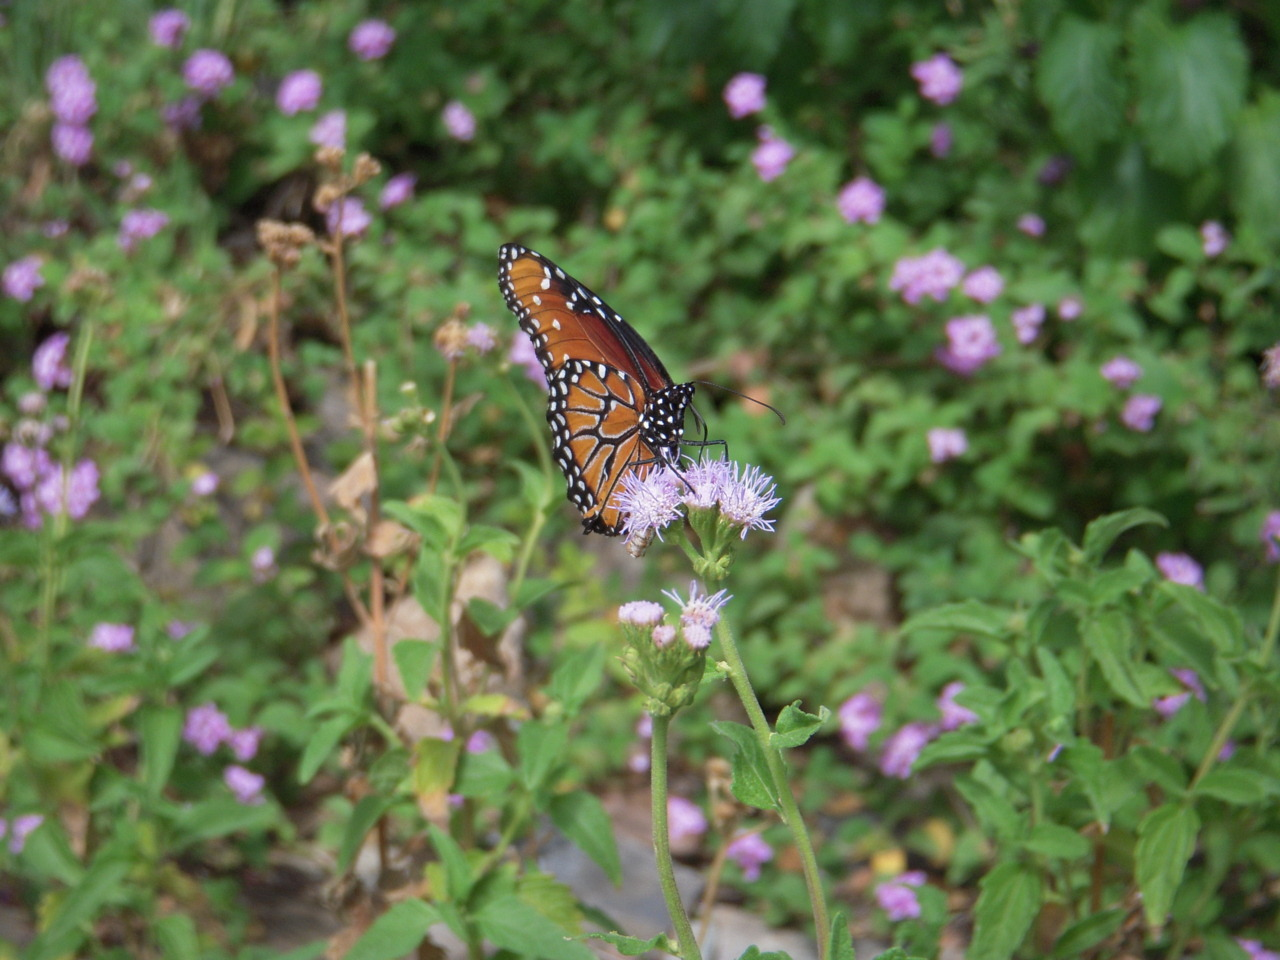 A Queen butterfly (Danaus gilippus) I saw at the Desert Museum. Or at least I think it's a Queen, I could be very wrong.